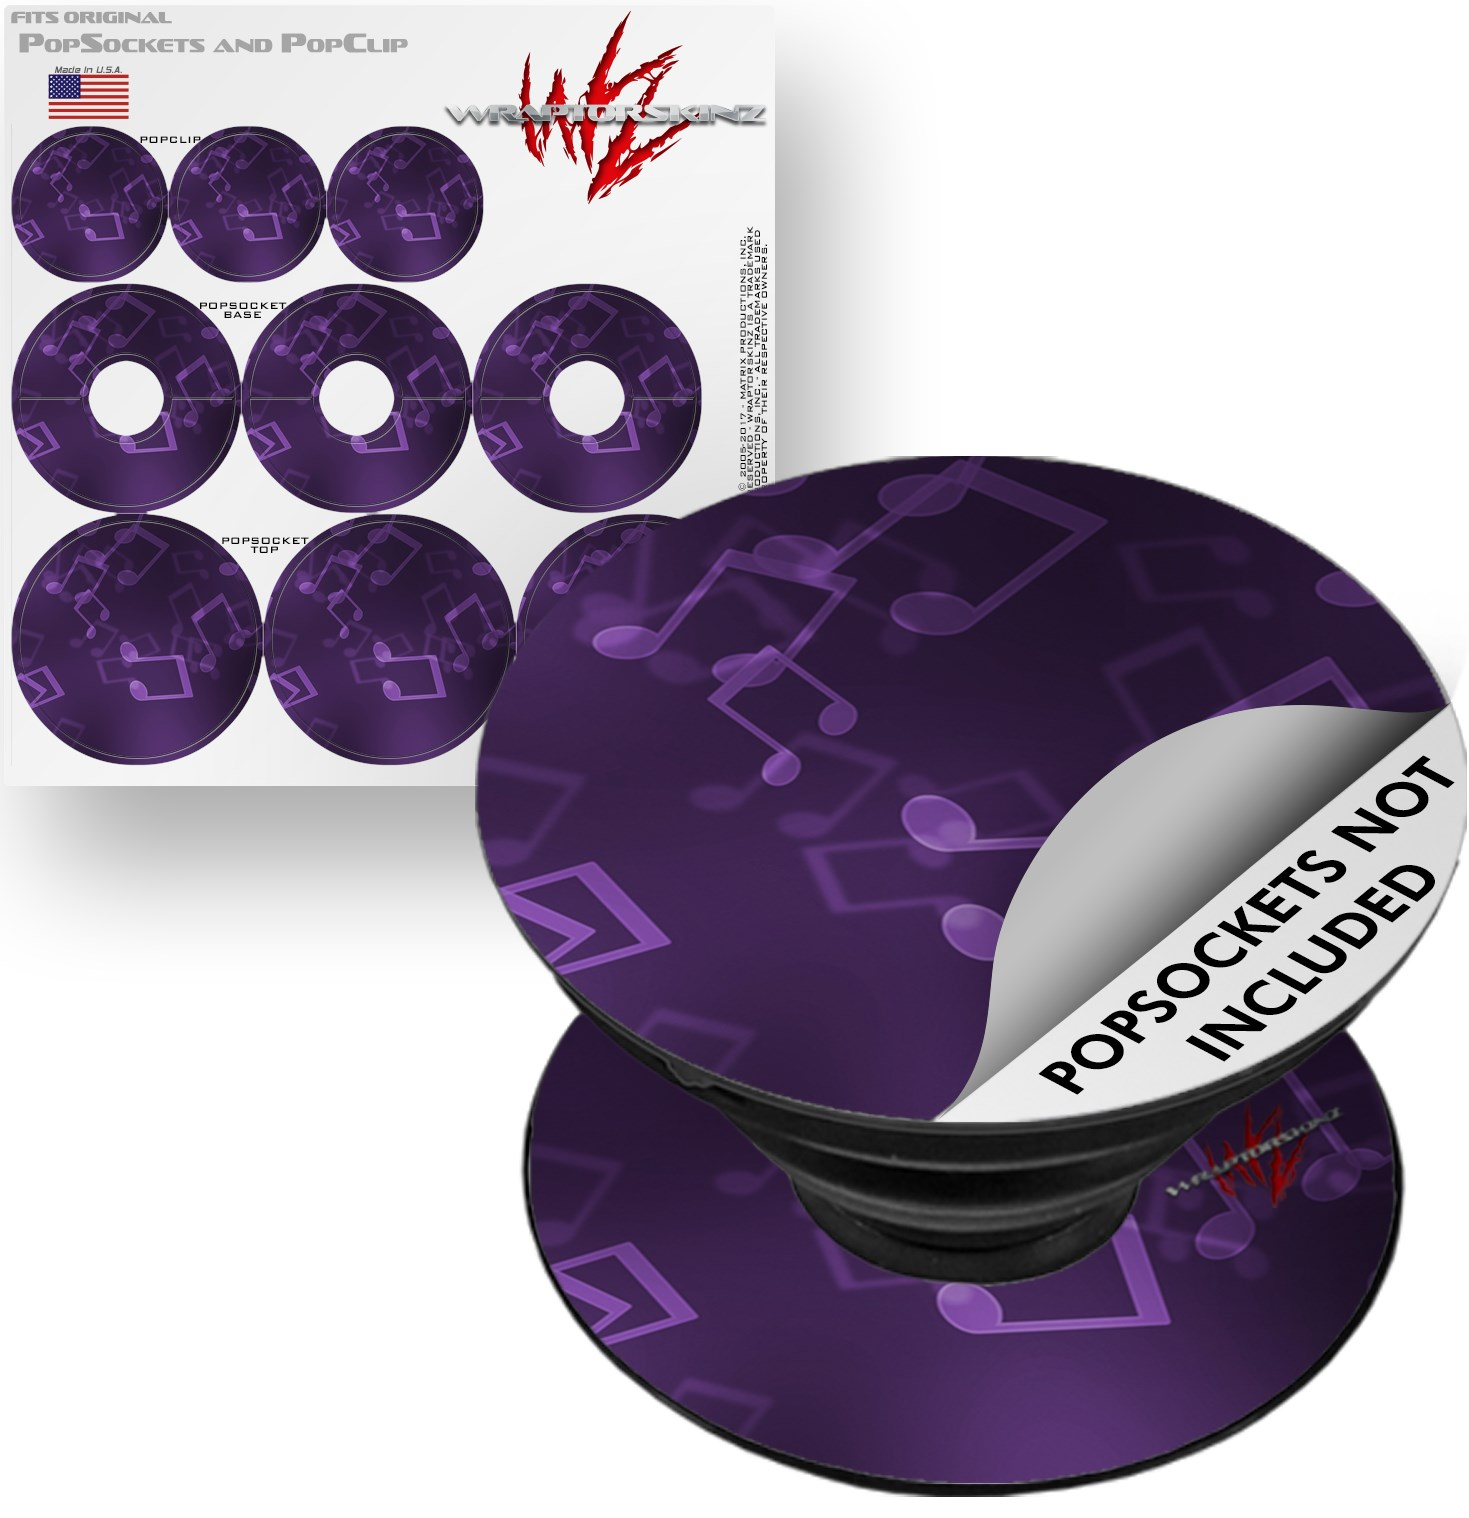 Decal Style Vinyl Skin Wrap 3 Pack for PopSockets Bokeh Music Purple (POPSOCKET NOT INCLUDED) by WraptorSkinz